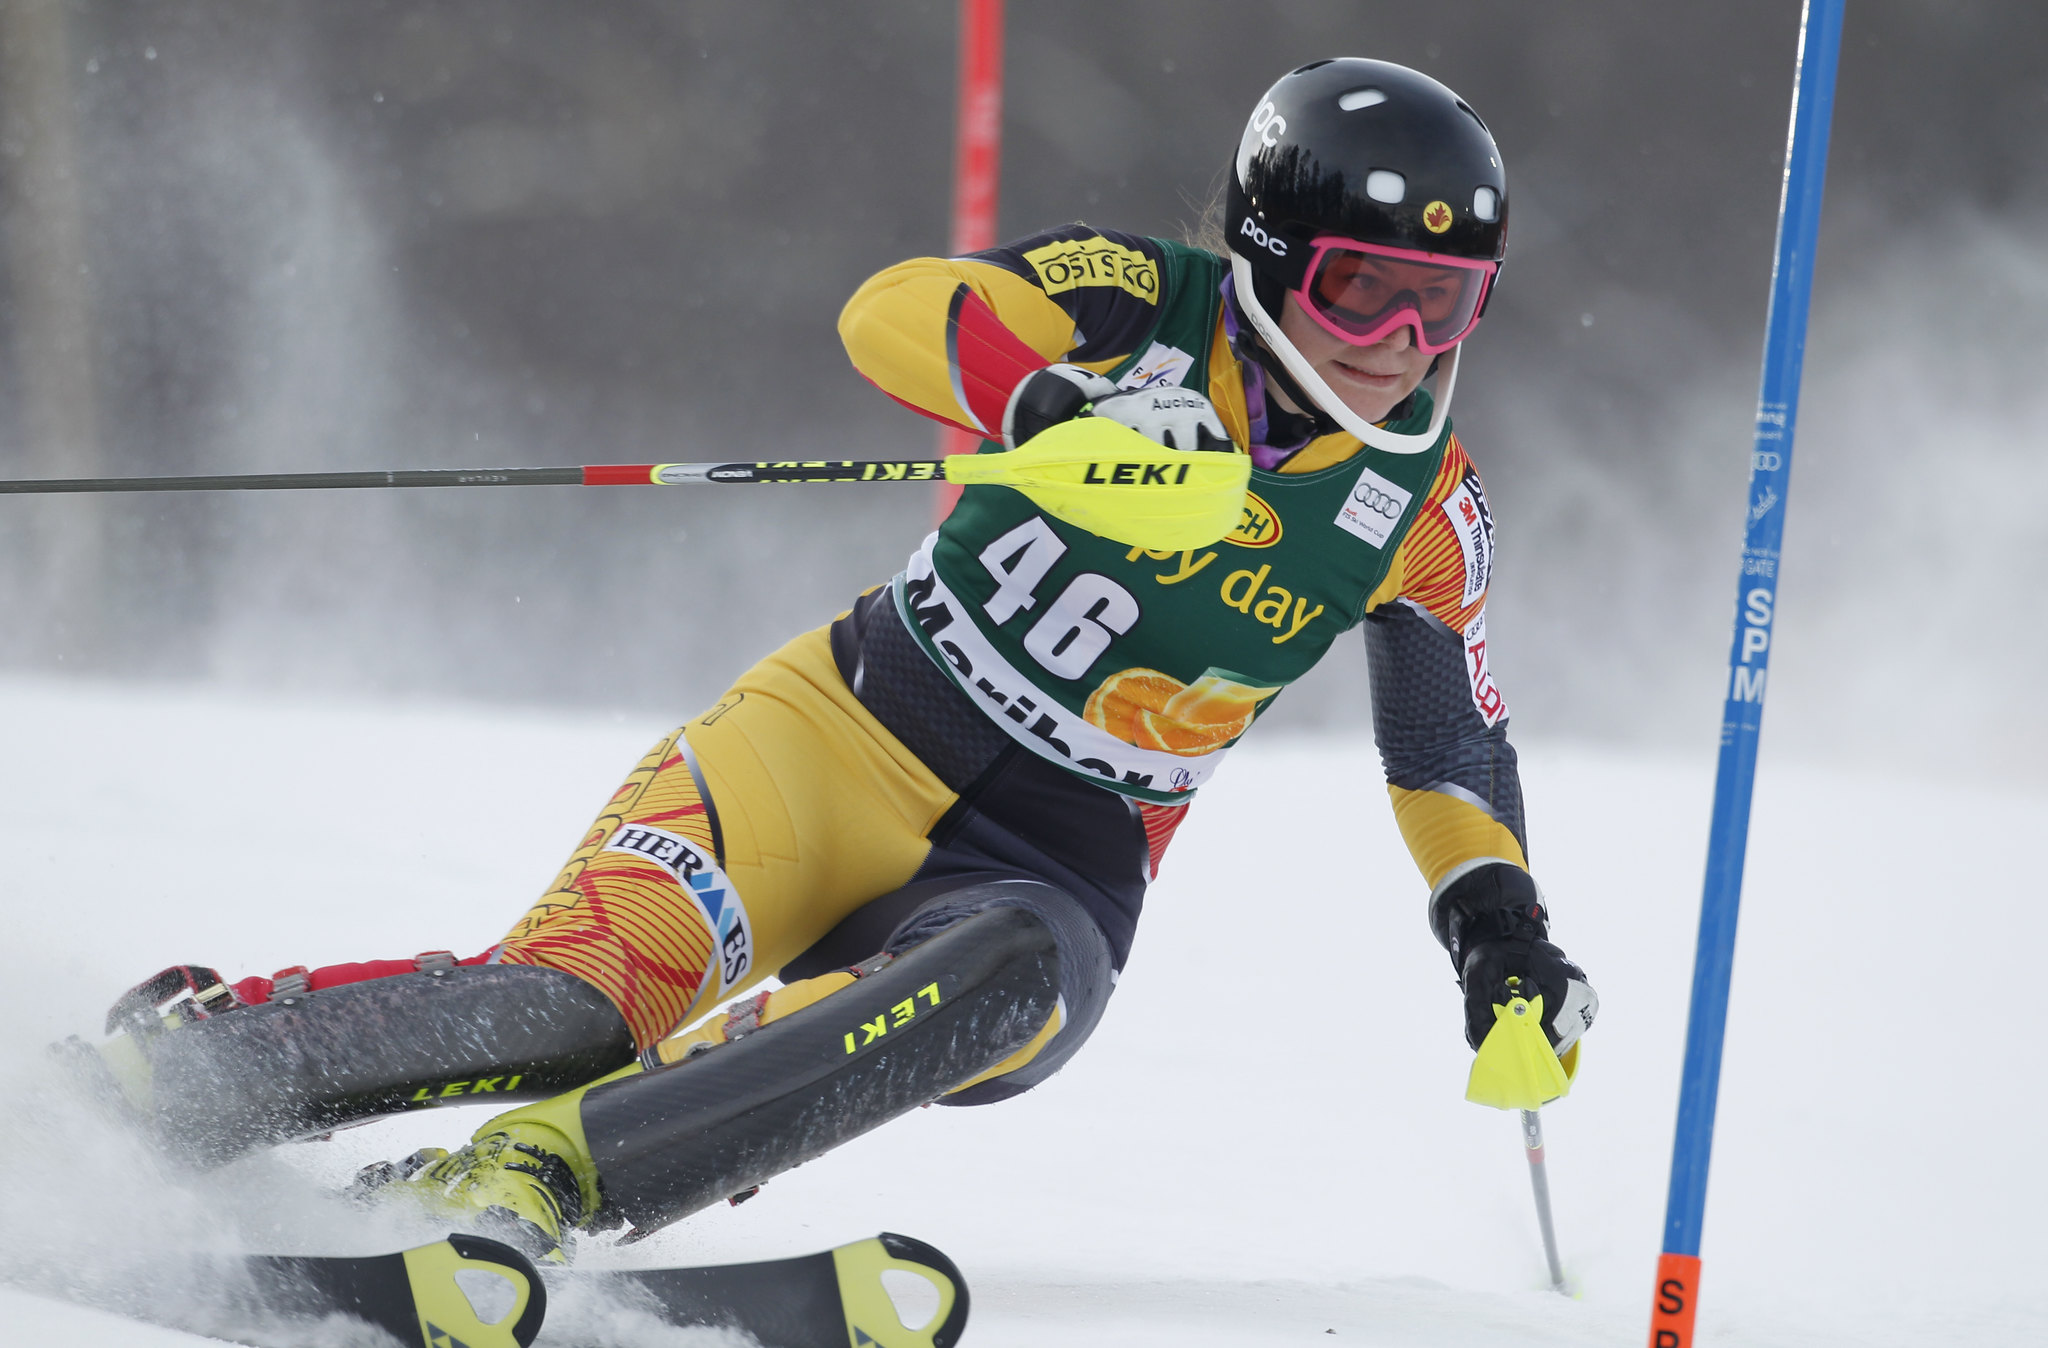 Elli Terwiel finishes 17th in slalom in Maribor, Slovenia.